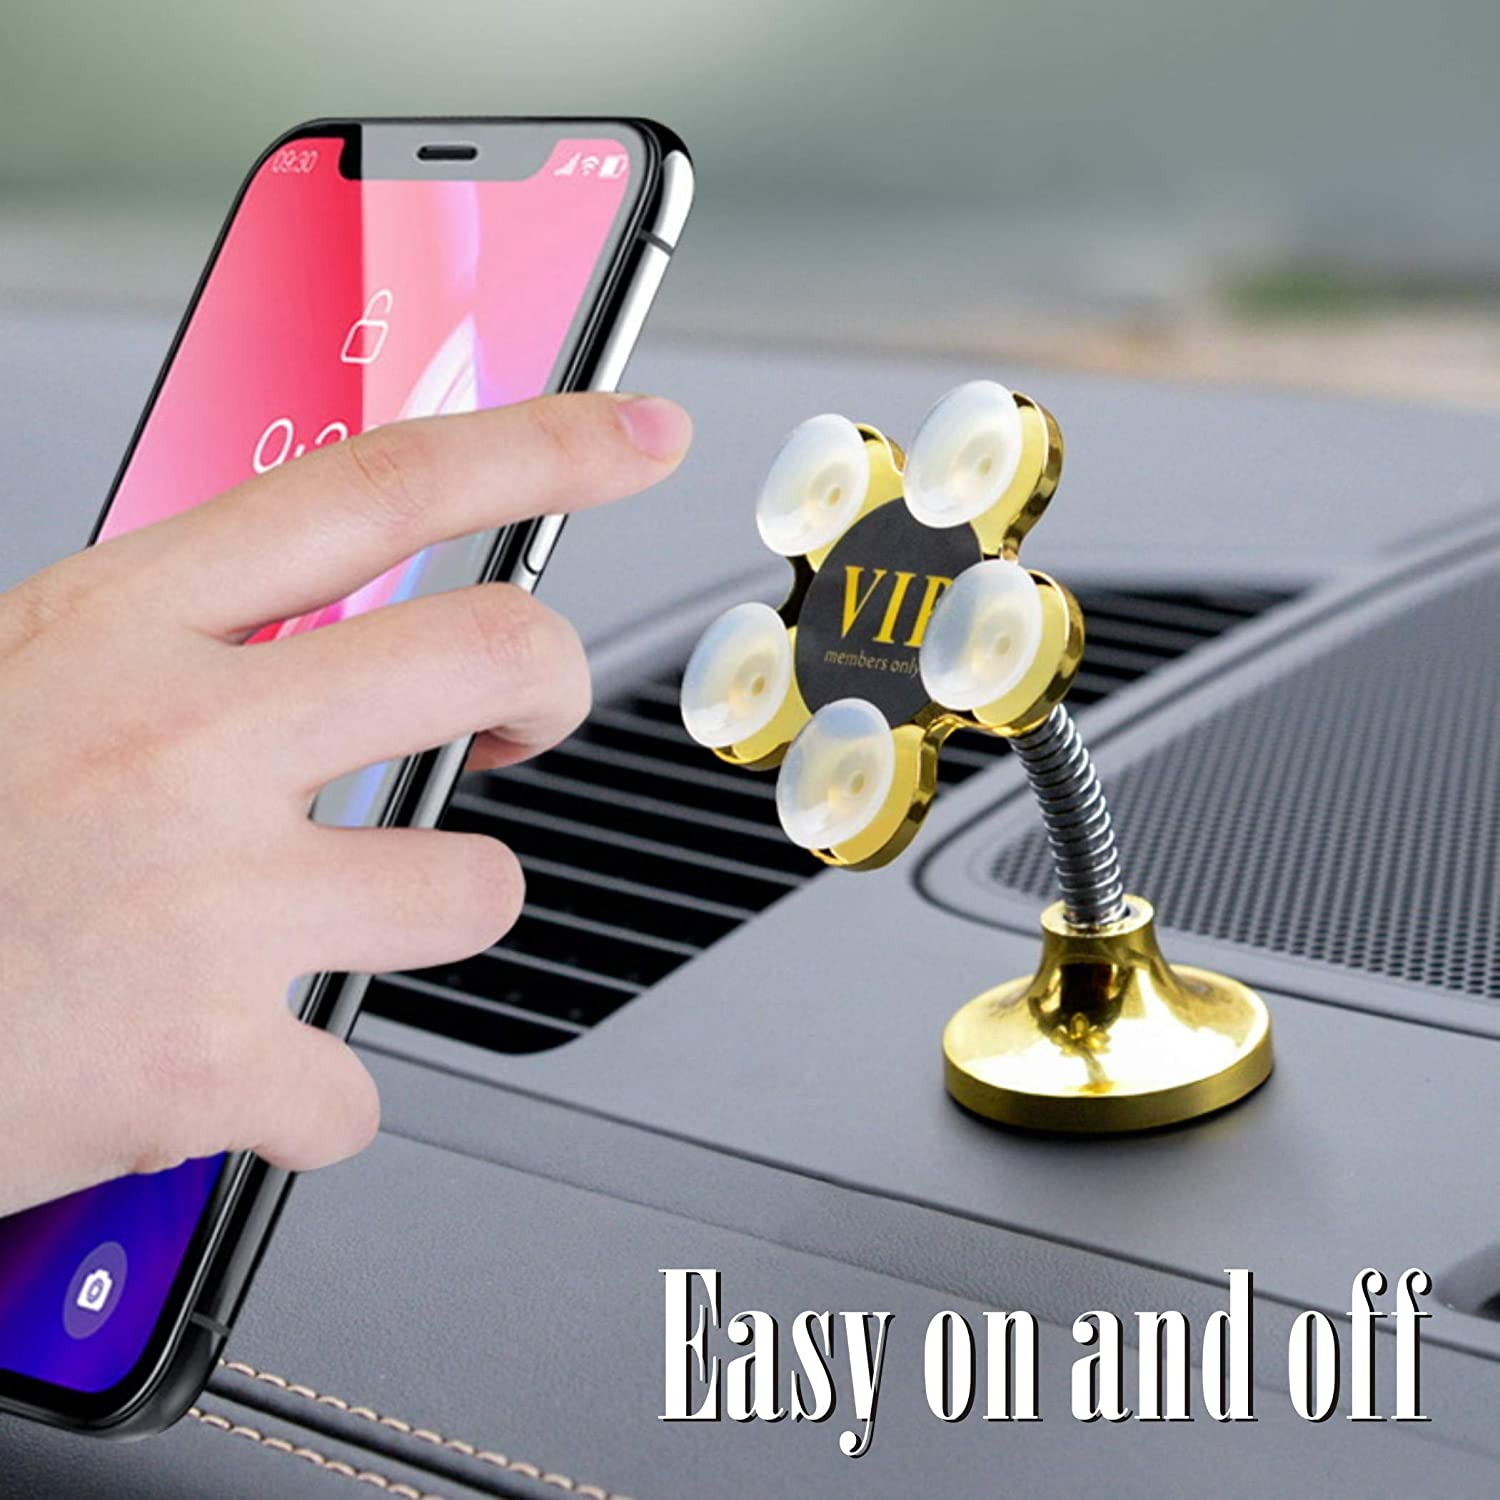 Iron Black- Car KAVANHON Silicone Sucker Holder for Phone Be a Universal Cell Phone Mount Using in Car Photo or Small Piece Picture with Smooth Surface